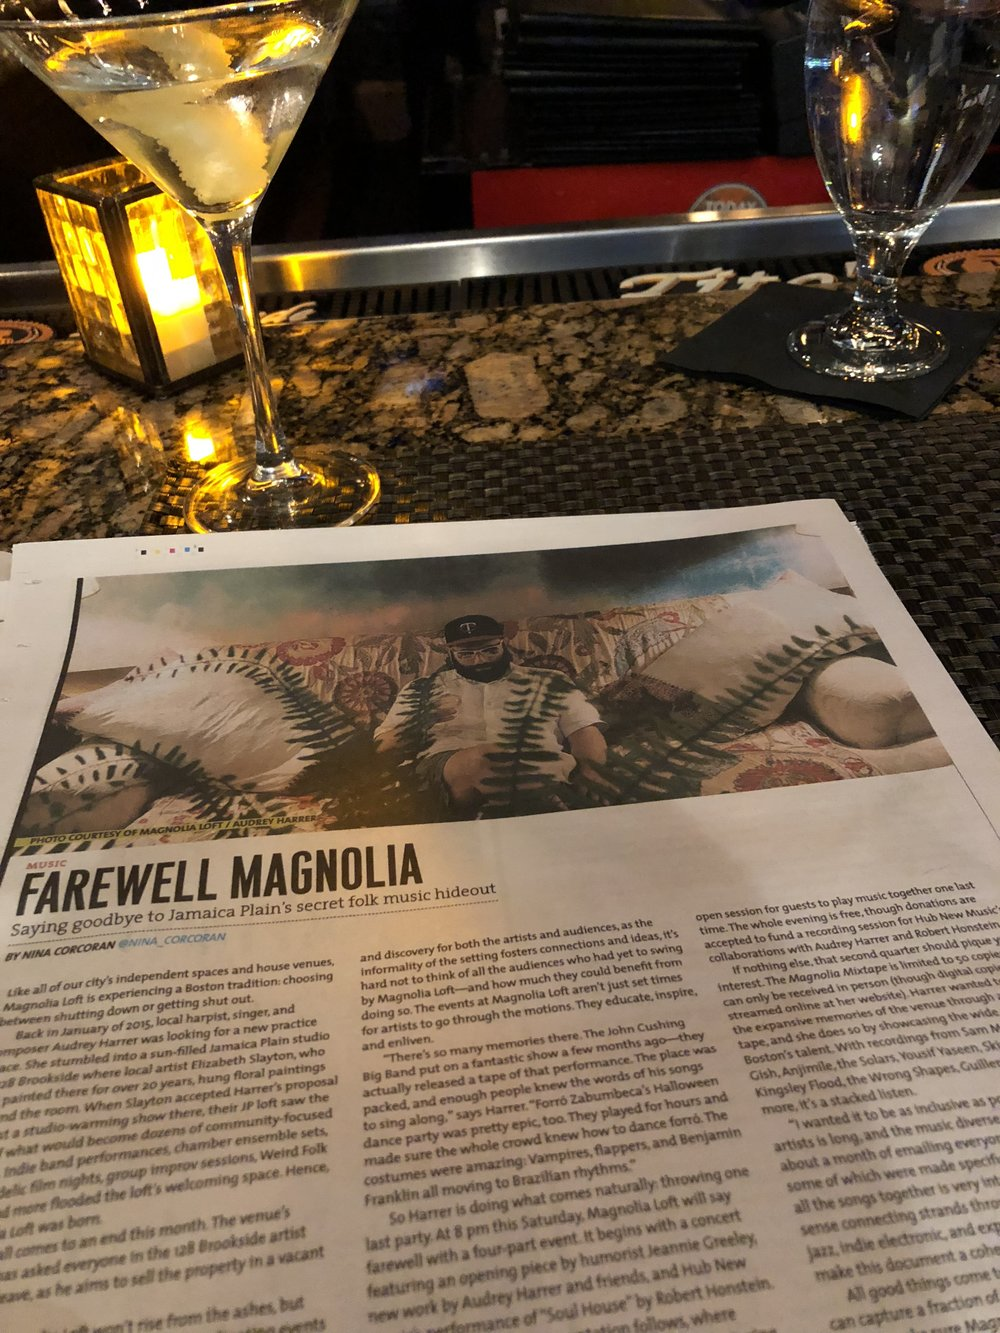 https://digboston.com/farewell-magnolia-saying-goodbye-to-jps-folk-music-hideout/